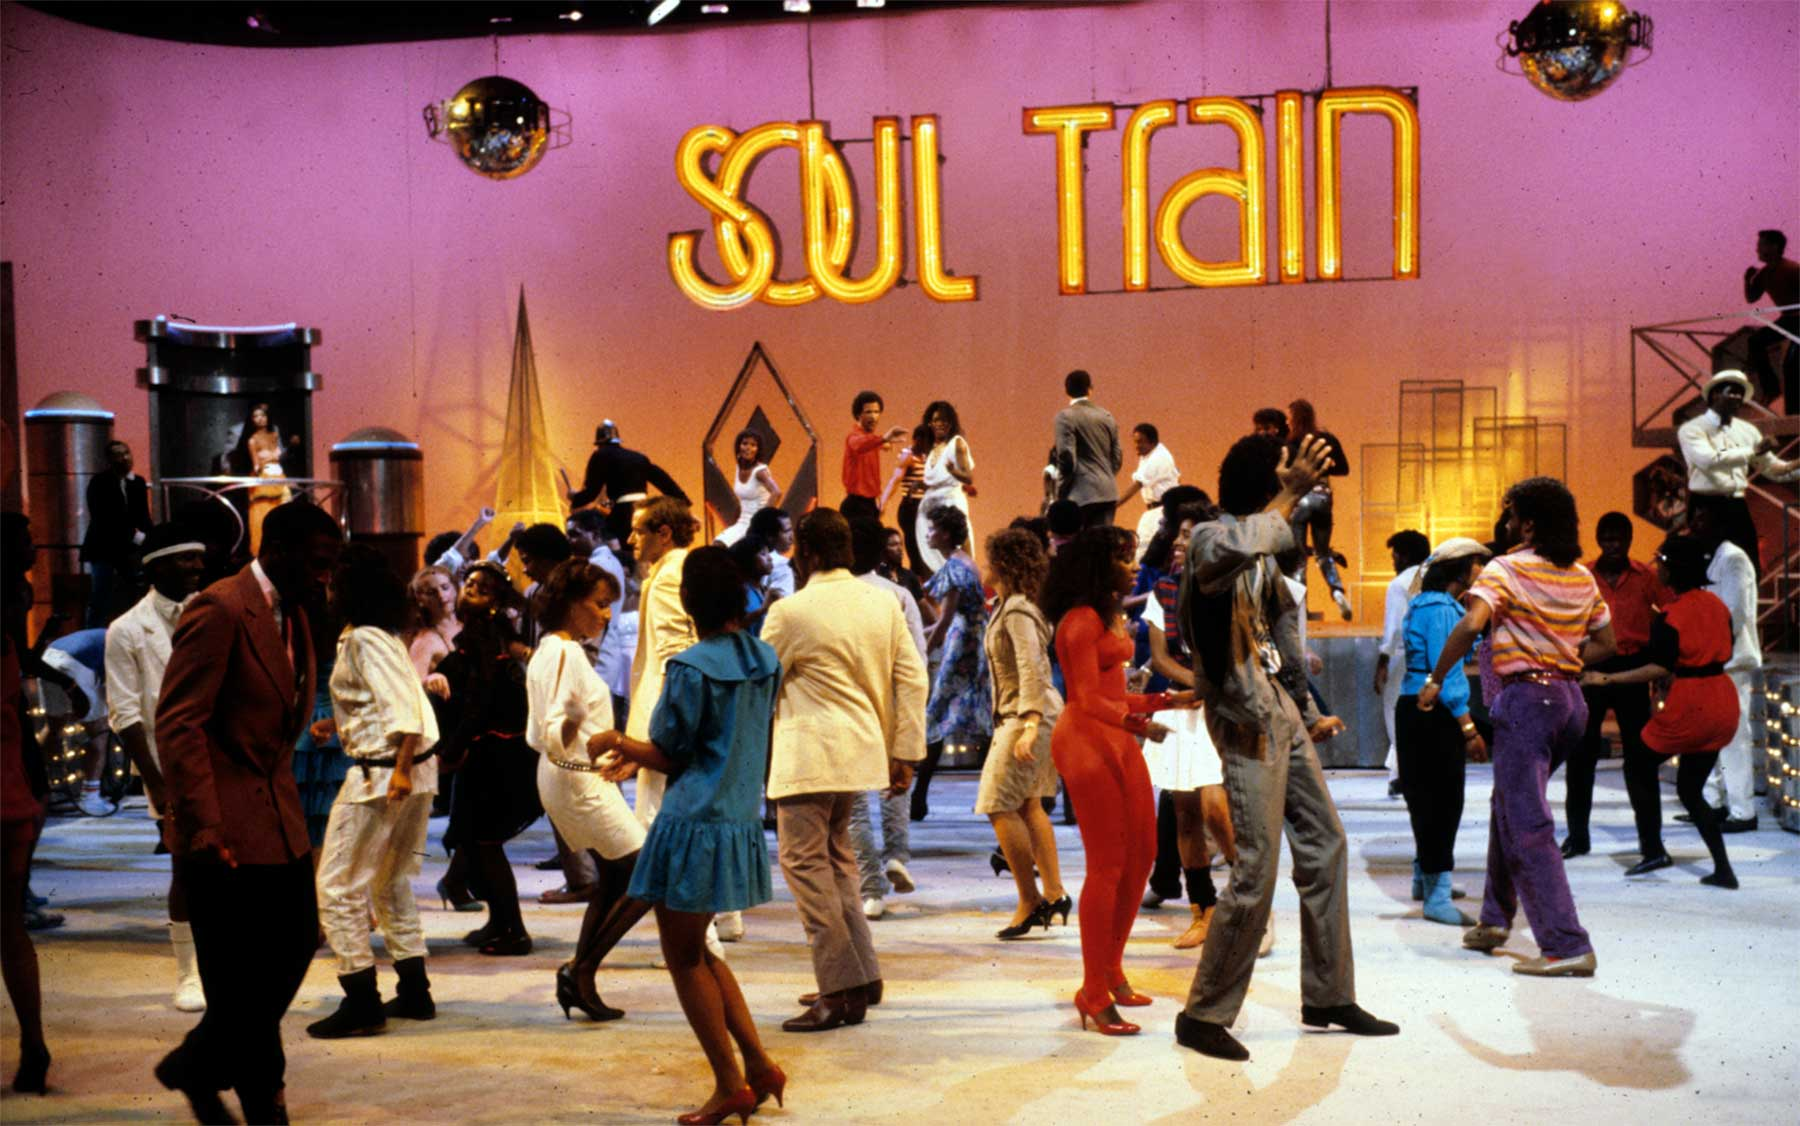 Roller skating rink milpitas - Nelson George Dissects The Socal Style That Made Soul Train A National Phenomenon